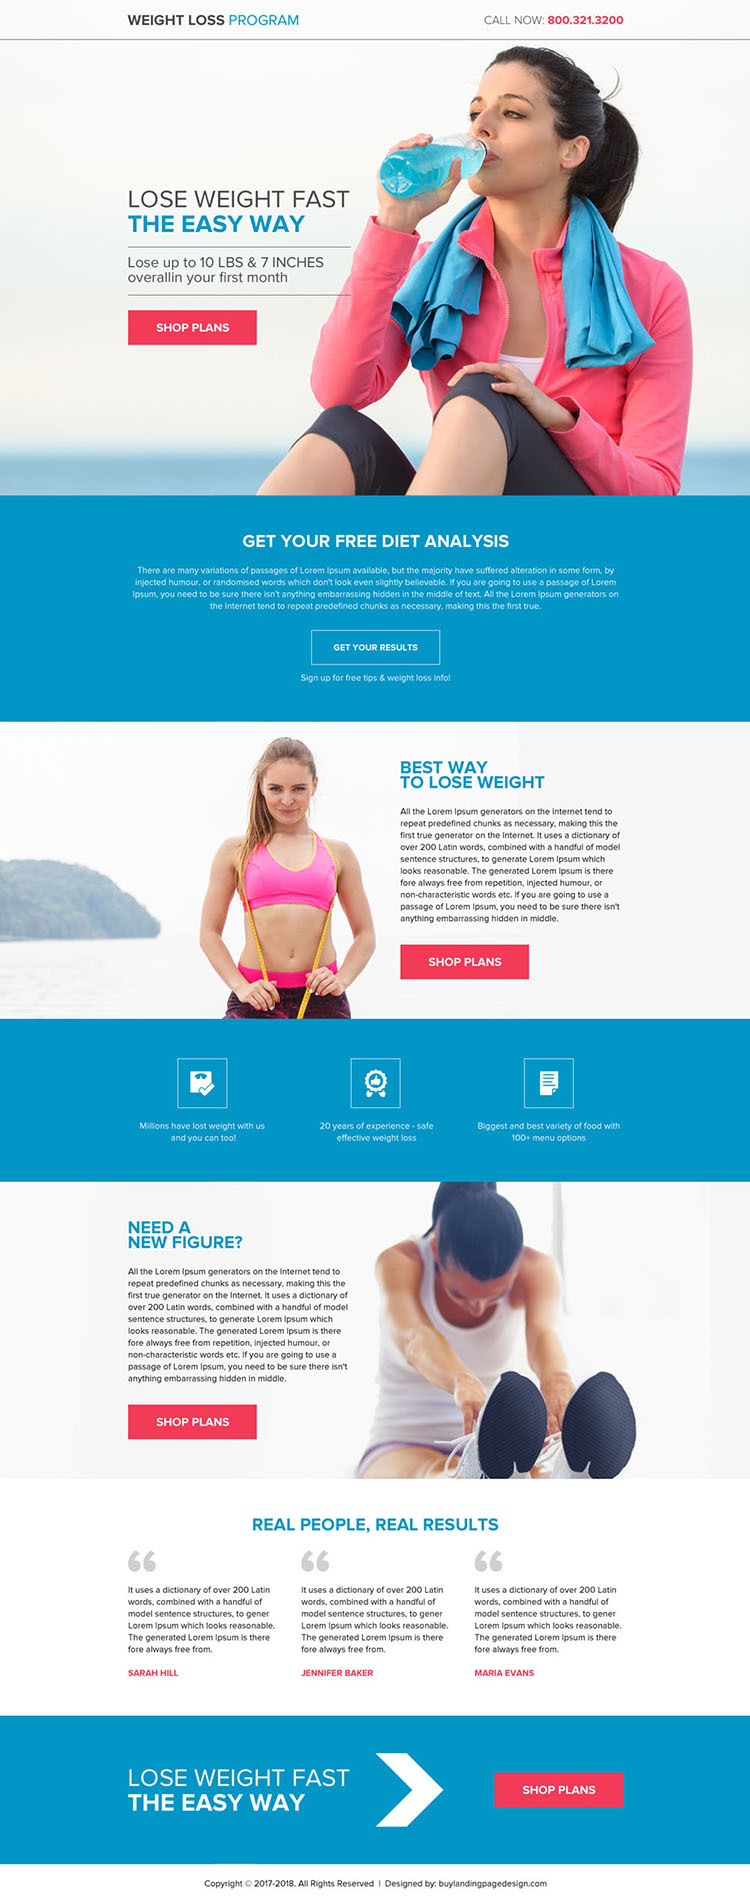 appealing weight loss programs premium landing page design